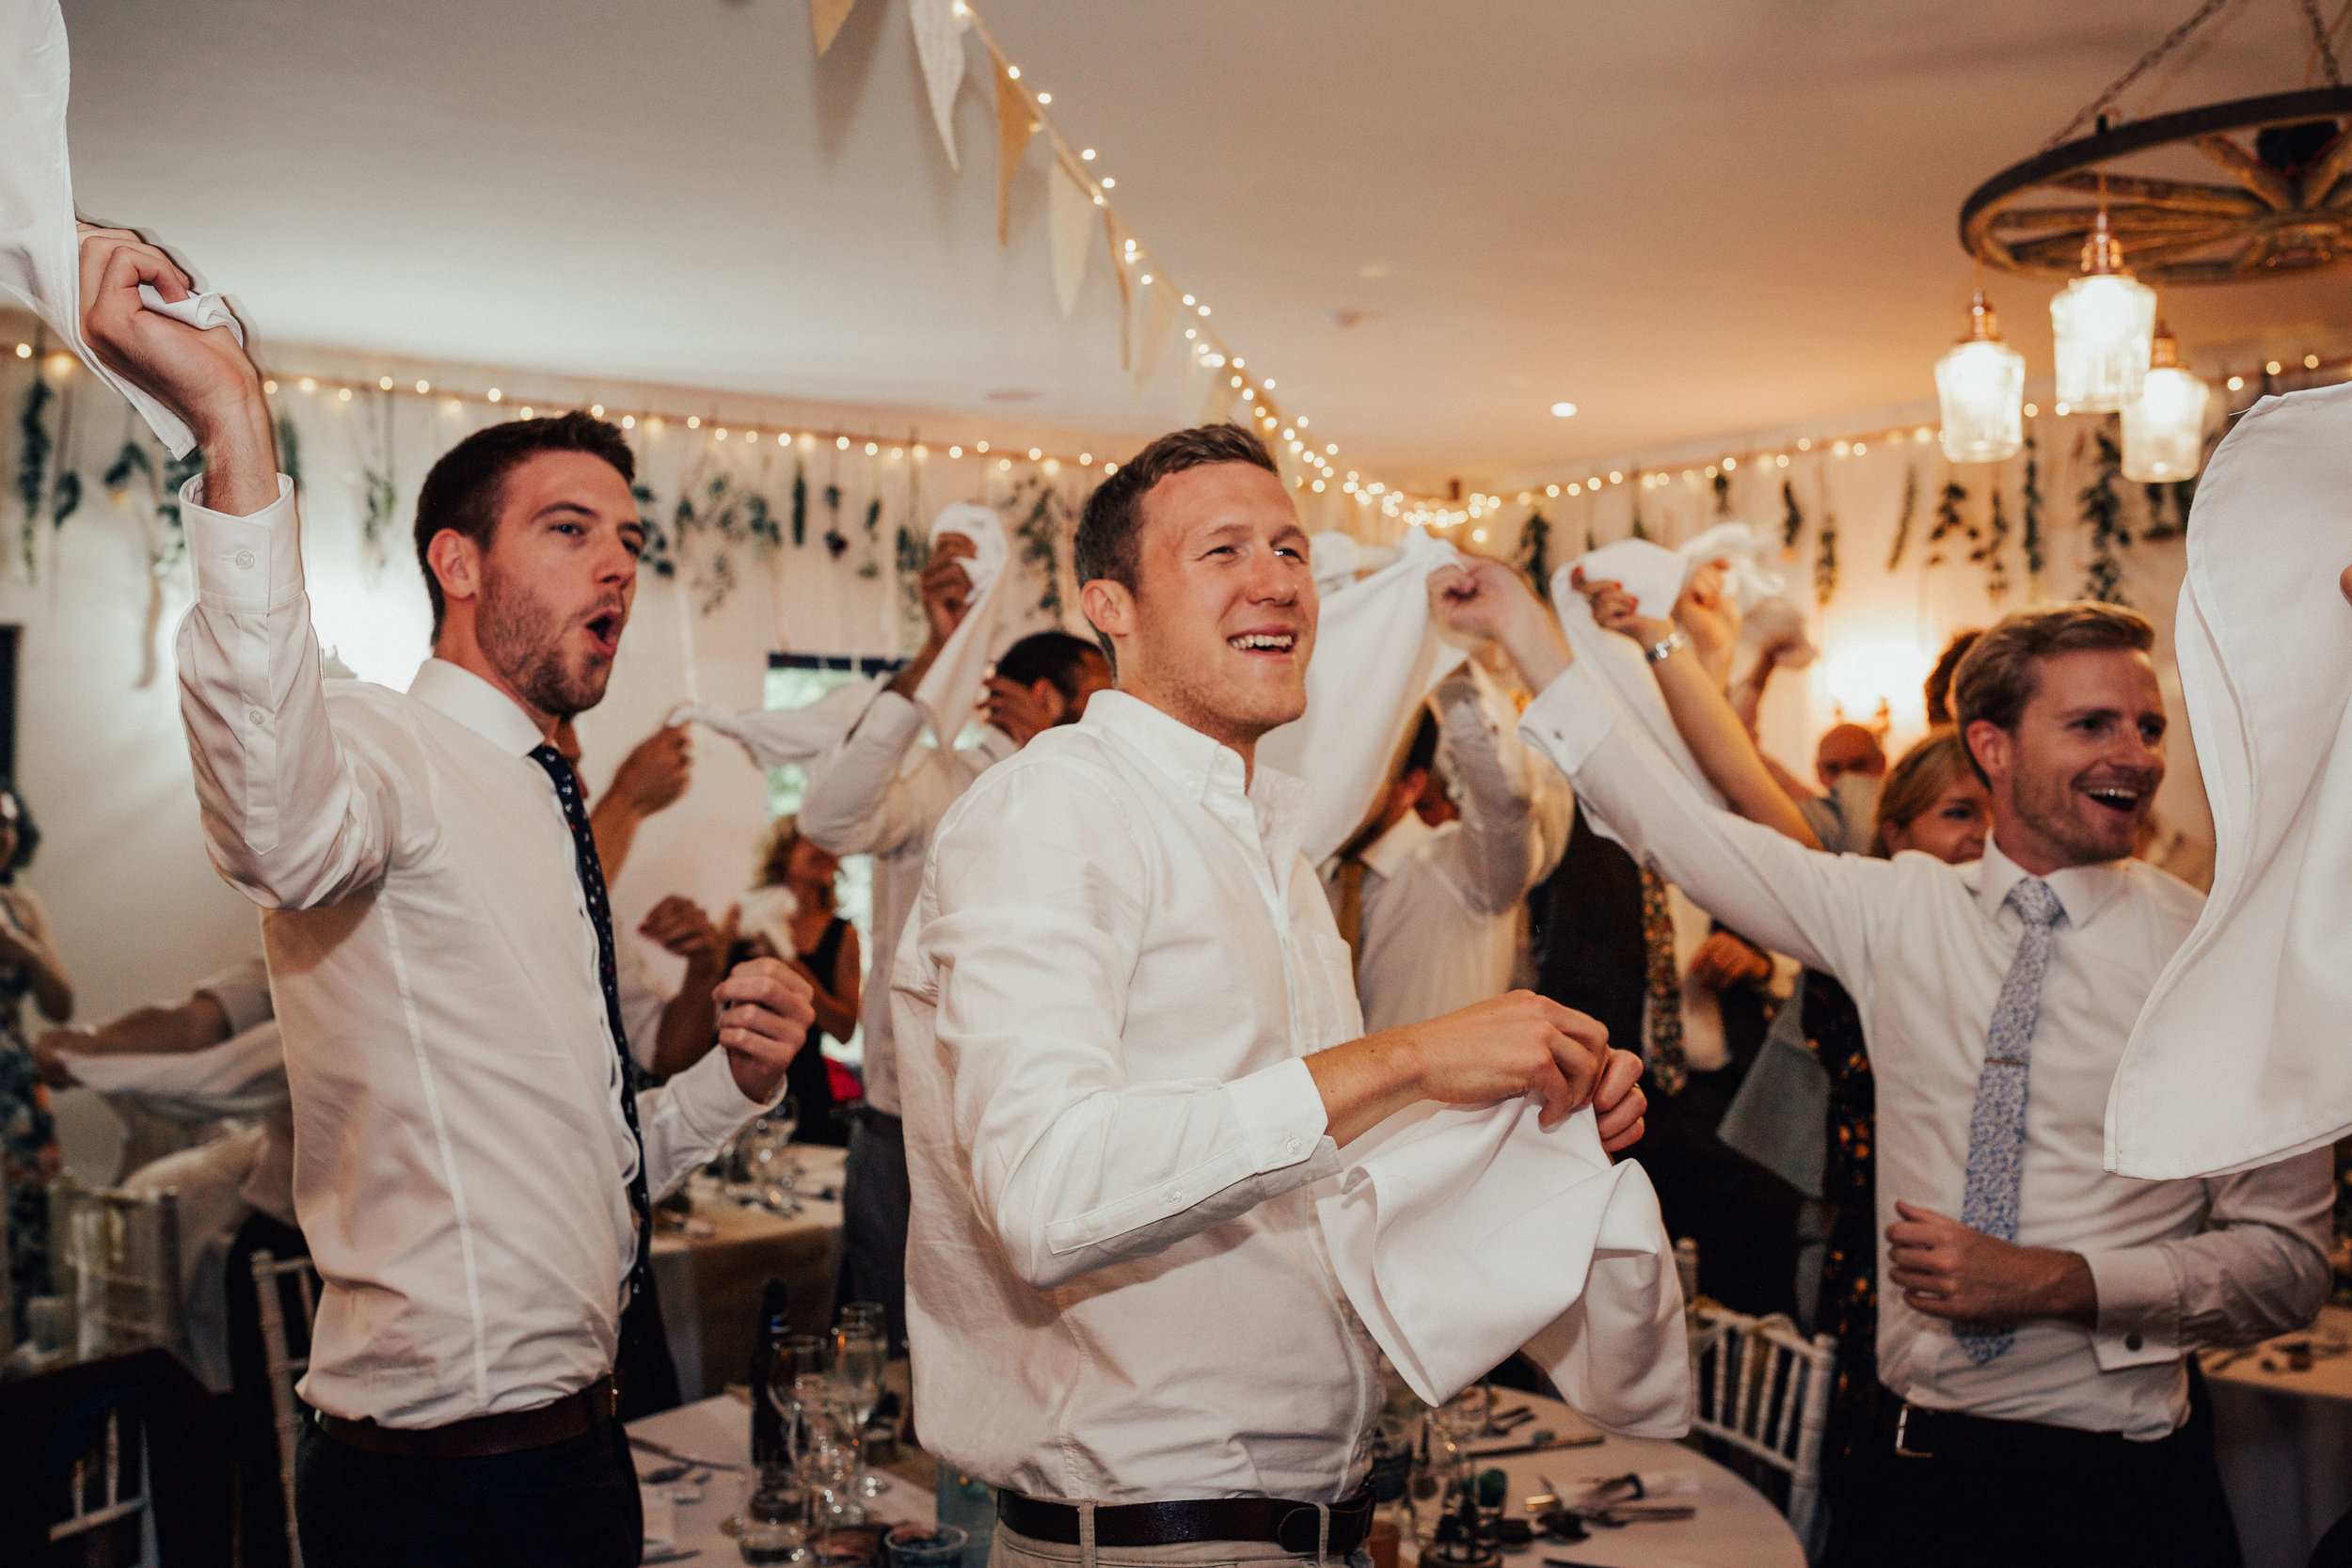 TWO_WOODS_ESTATE_WEDDING_PULBOROUGH_PJ_PHILLIPS_PHOTOGRAPHY_FRAN_&_GEORGE_178.jpg